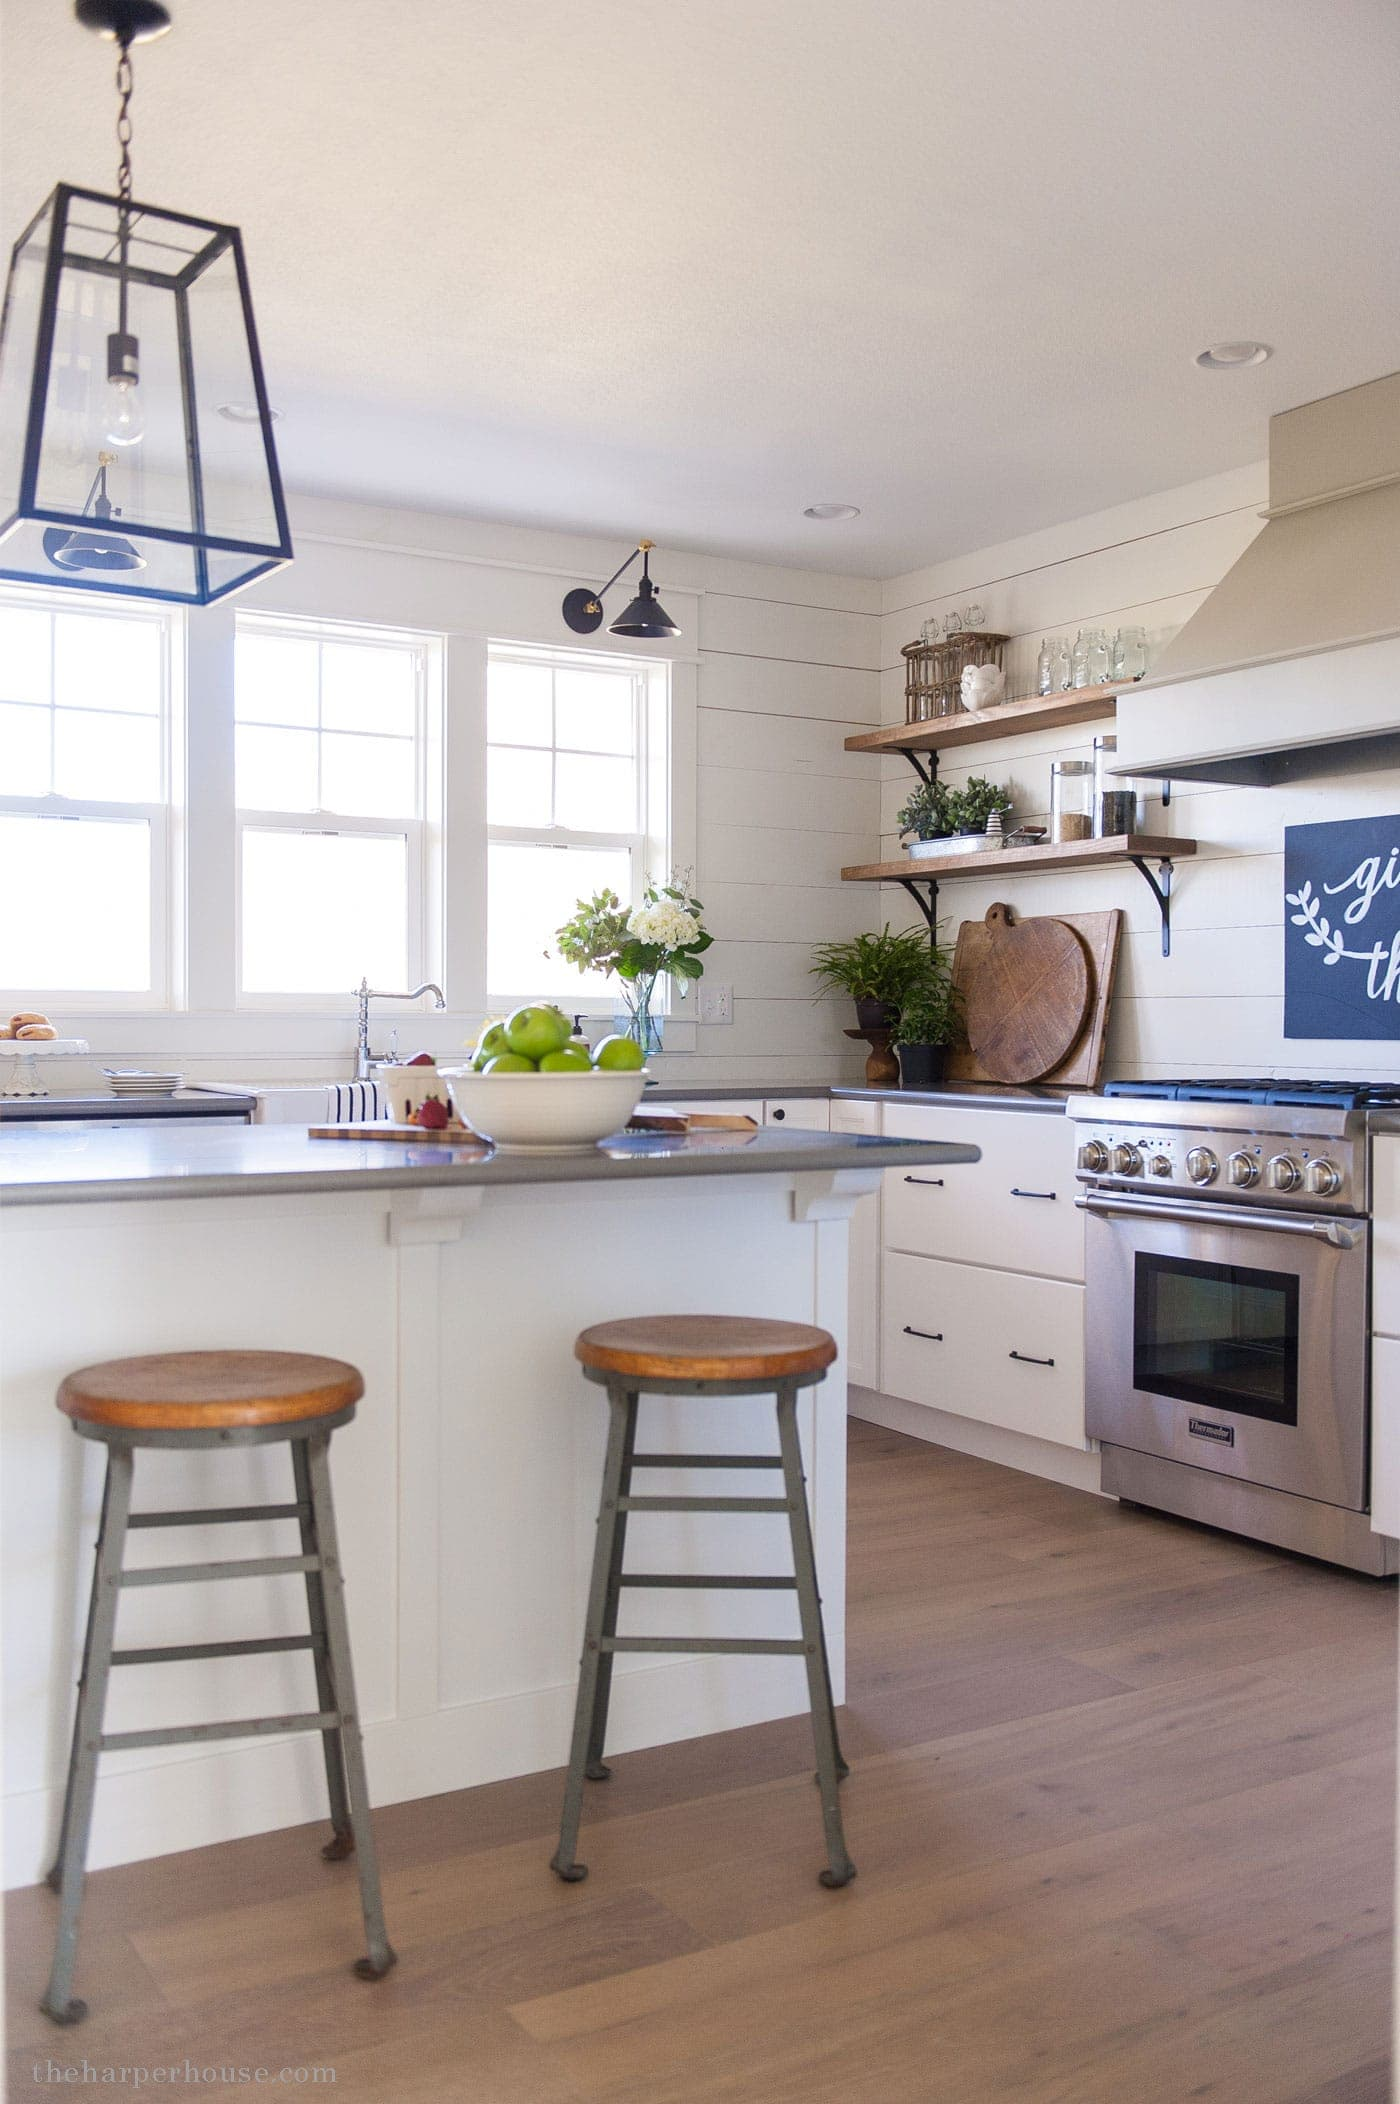 ikea kitchen upper cabinets ninja complete system farmhouse style details | the harper house